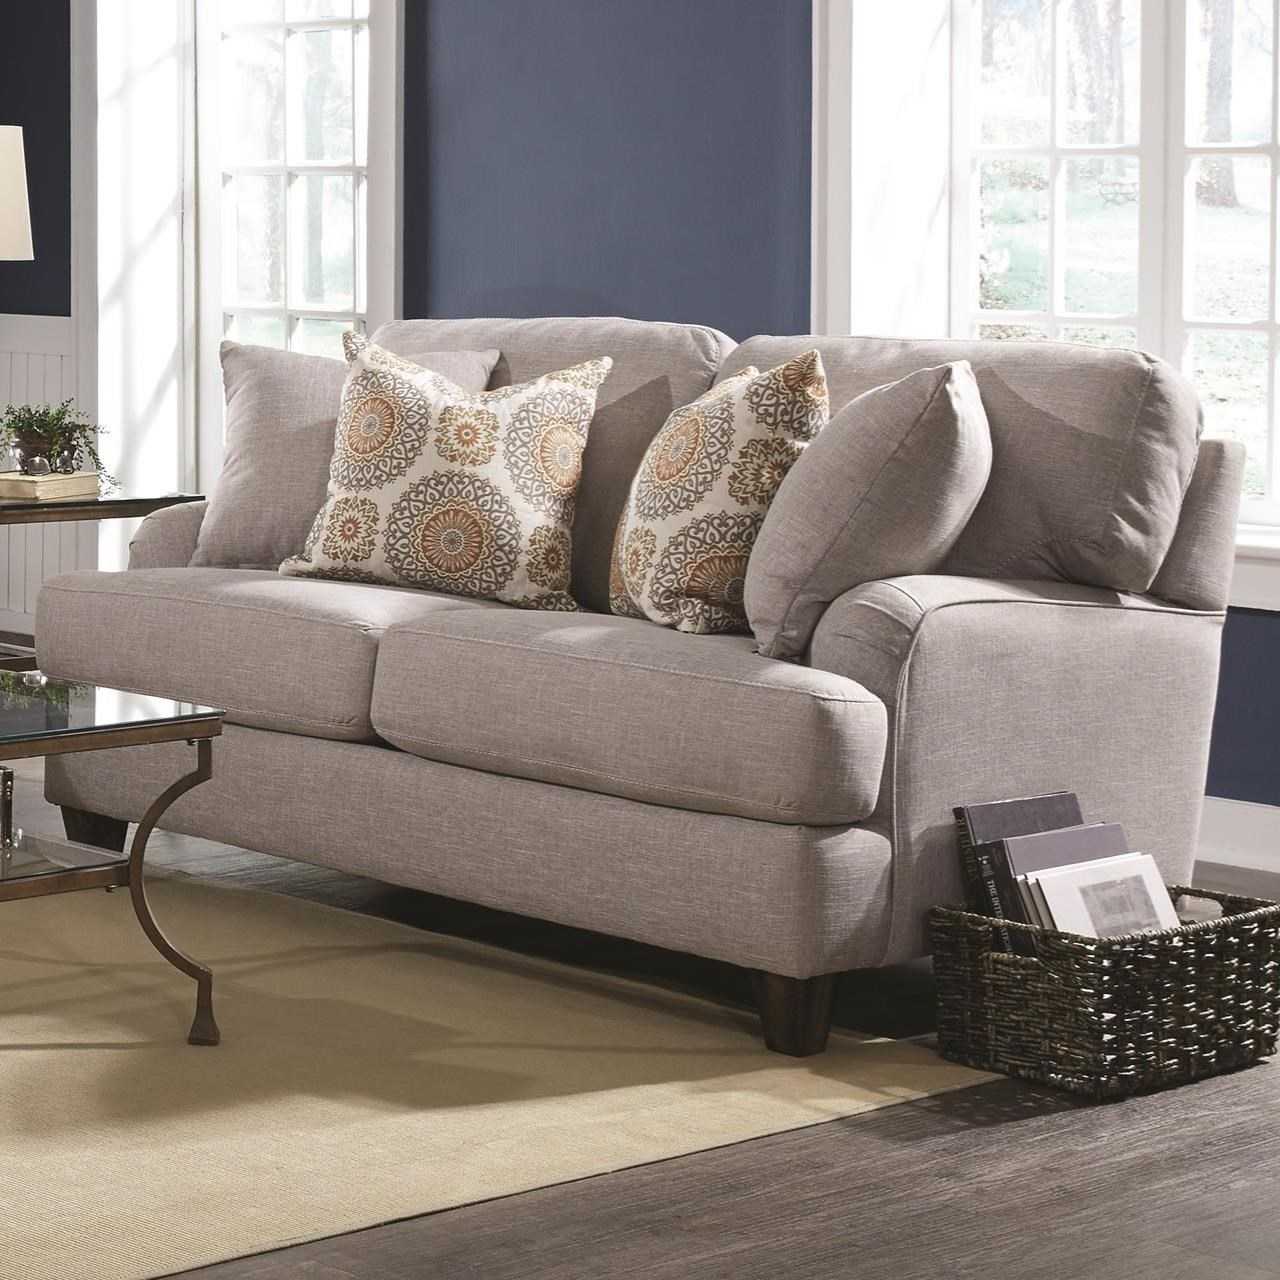 Franklin Carmel Loveseat With Classic Cottage Style | Miskelly Furniture |  Love Seats